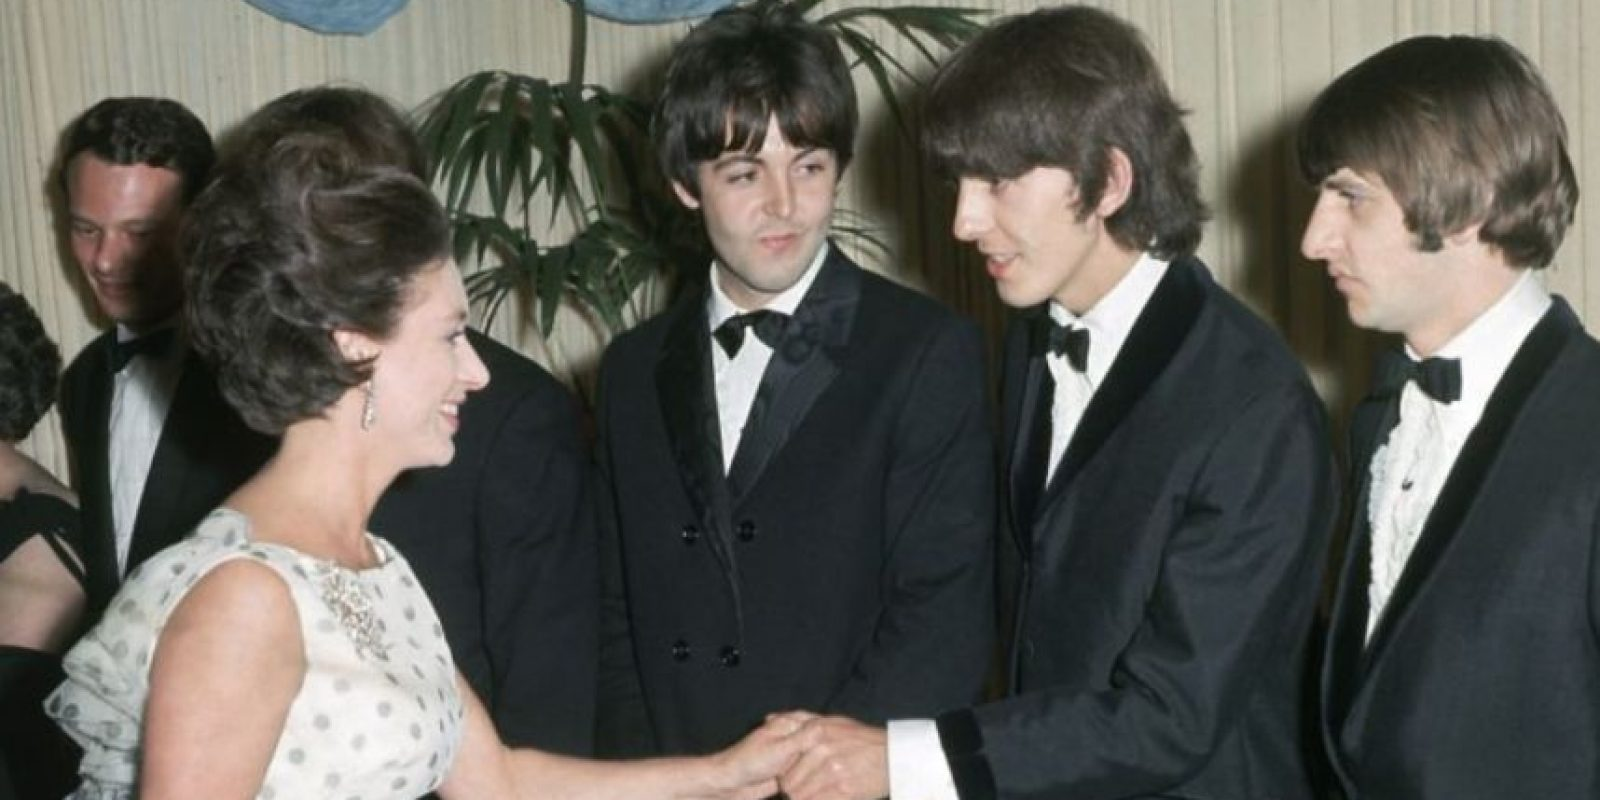 Datos que probablemente no conocían de The Beatles. Foto: Getty Images